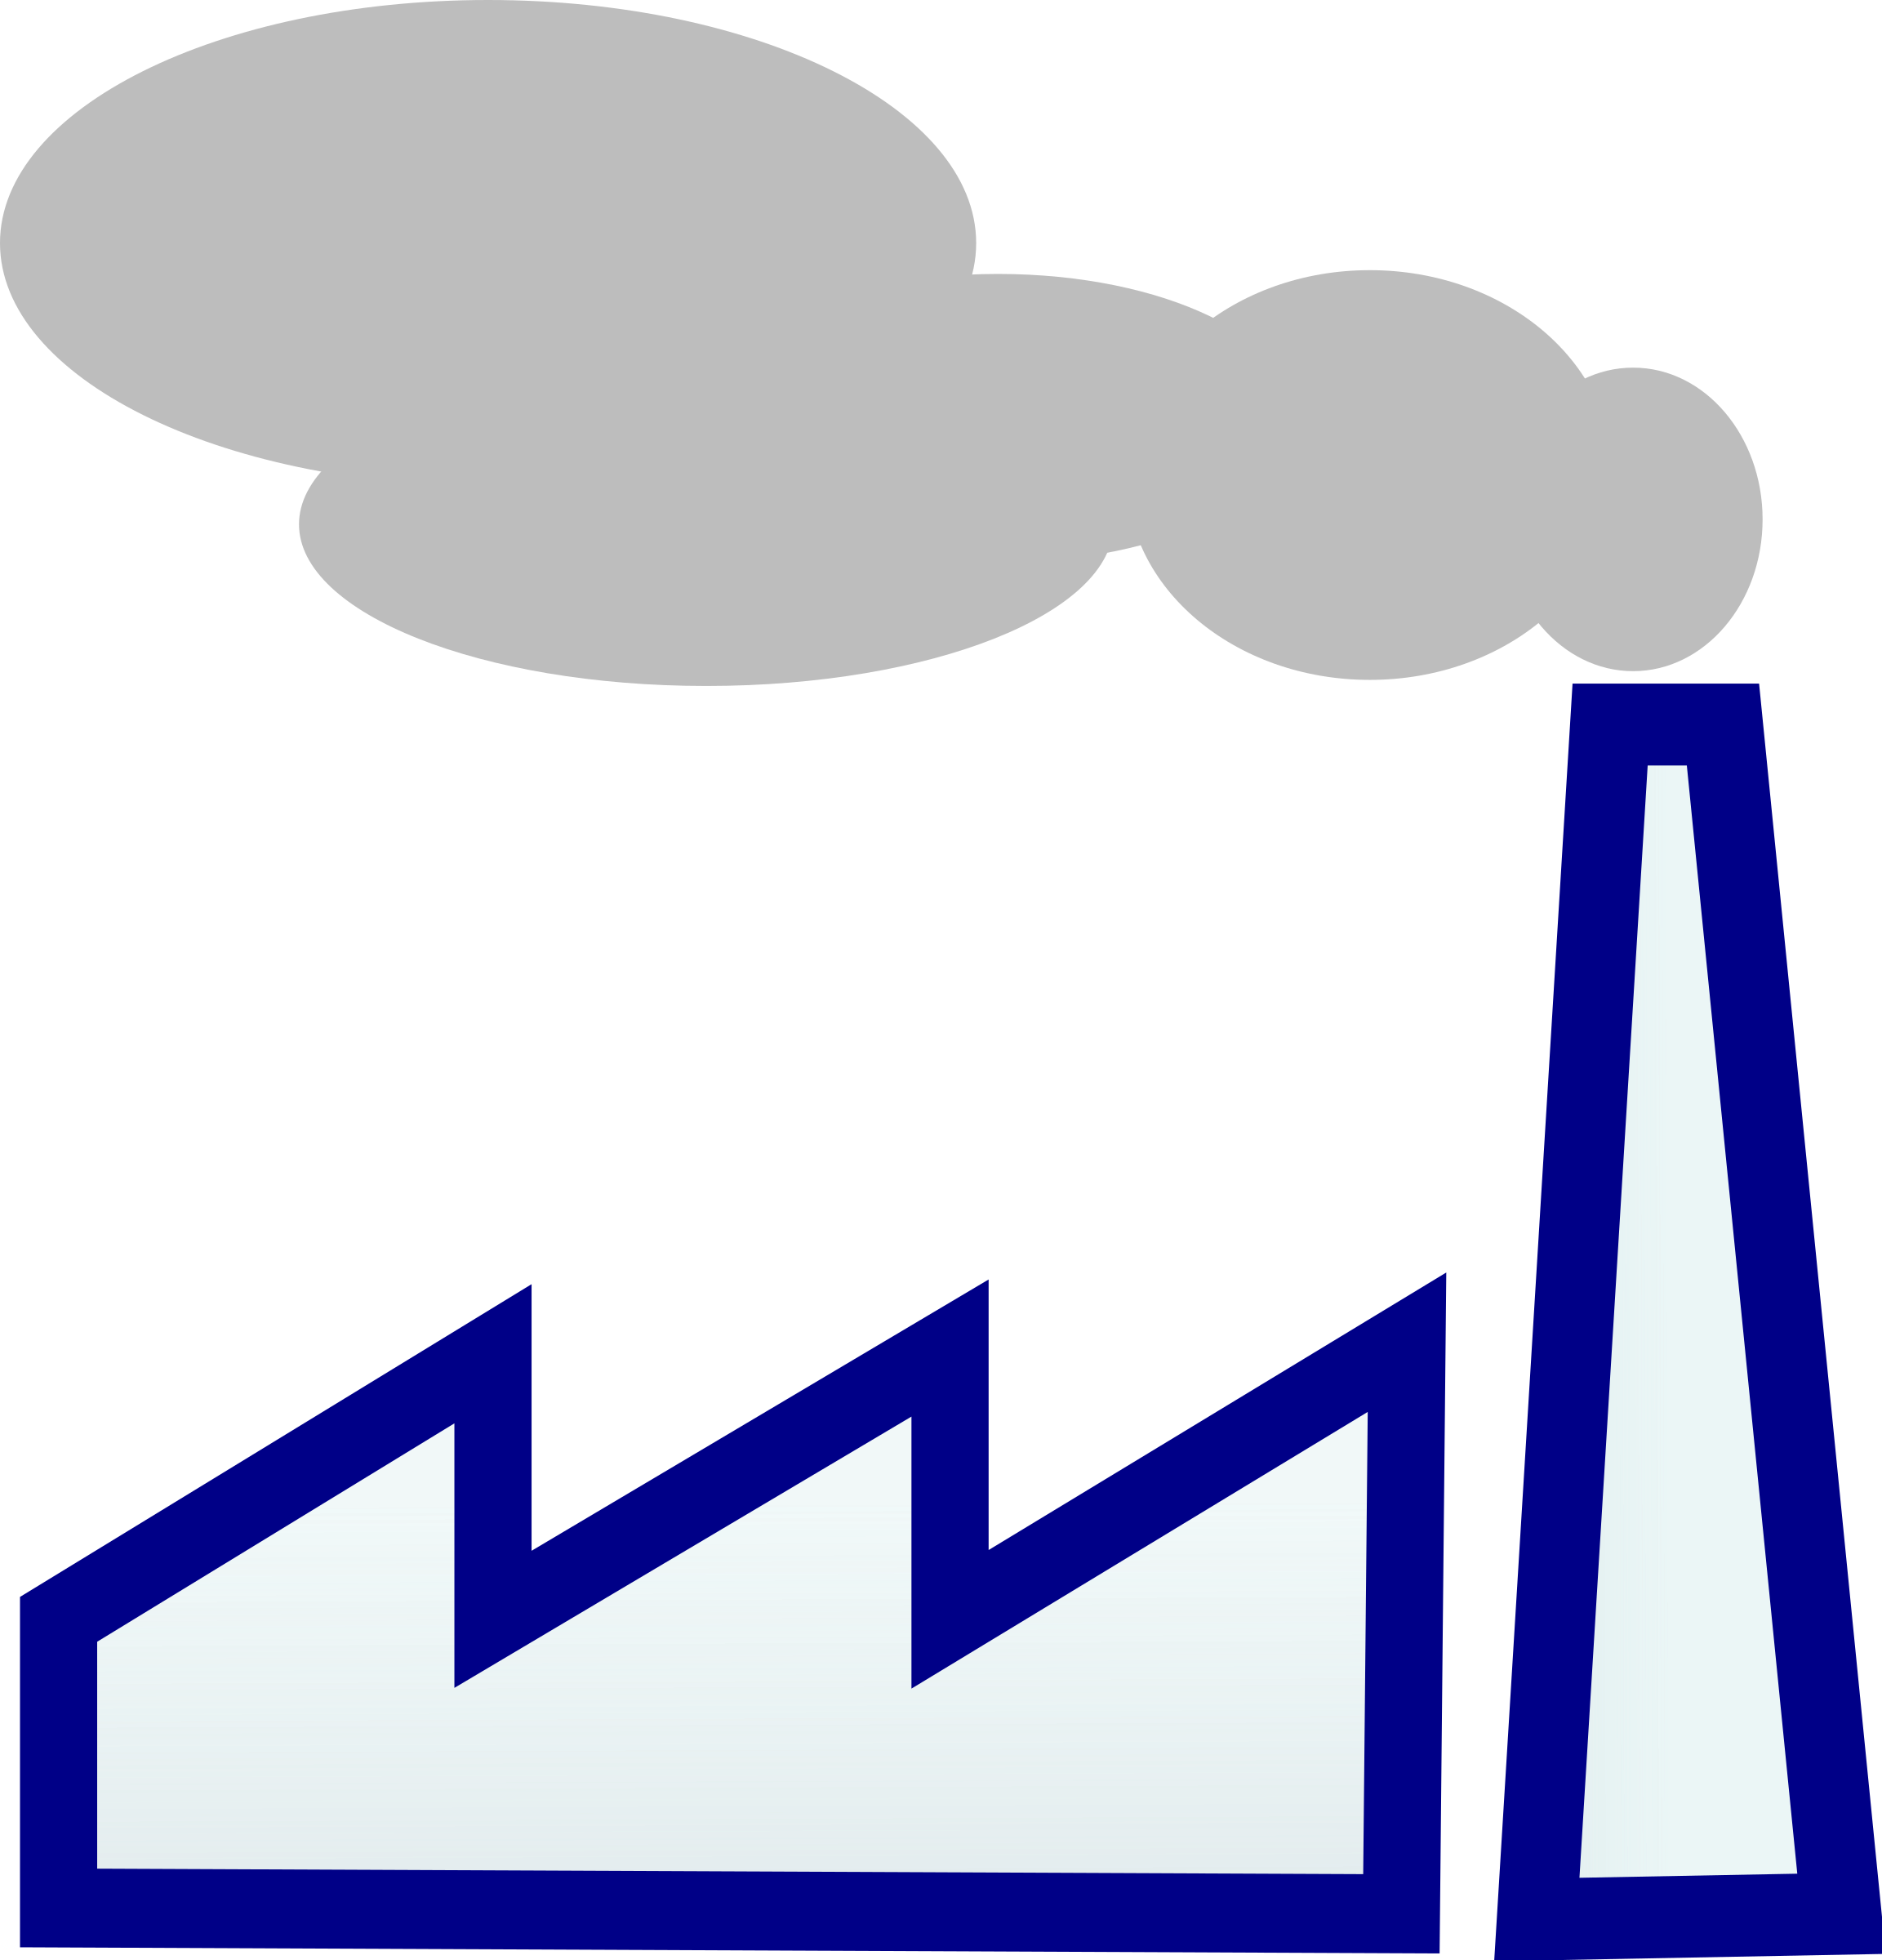 Chimneys with smoke clipart #7